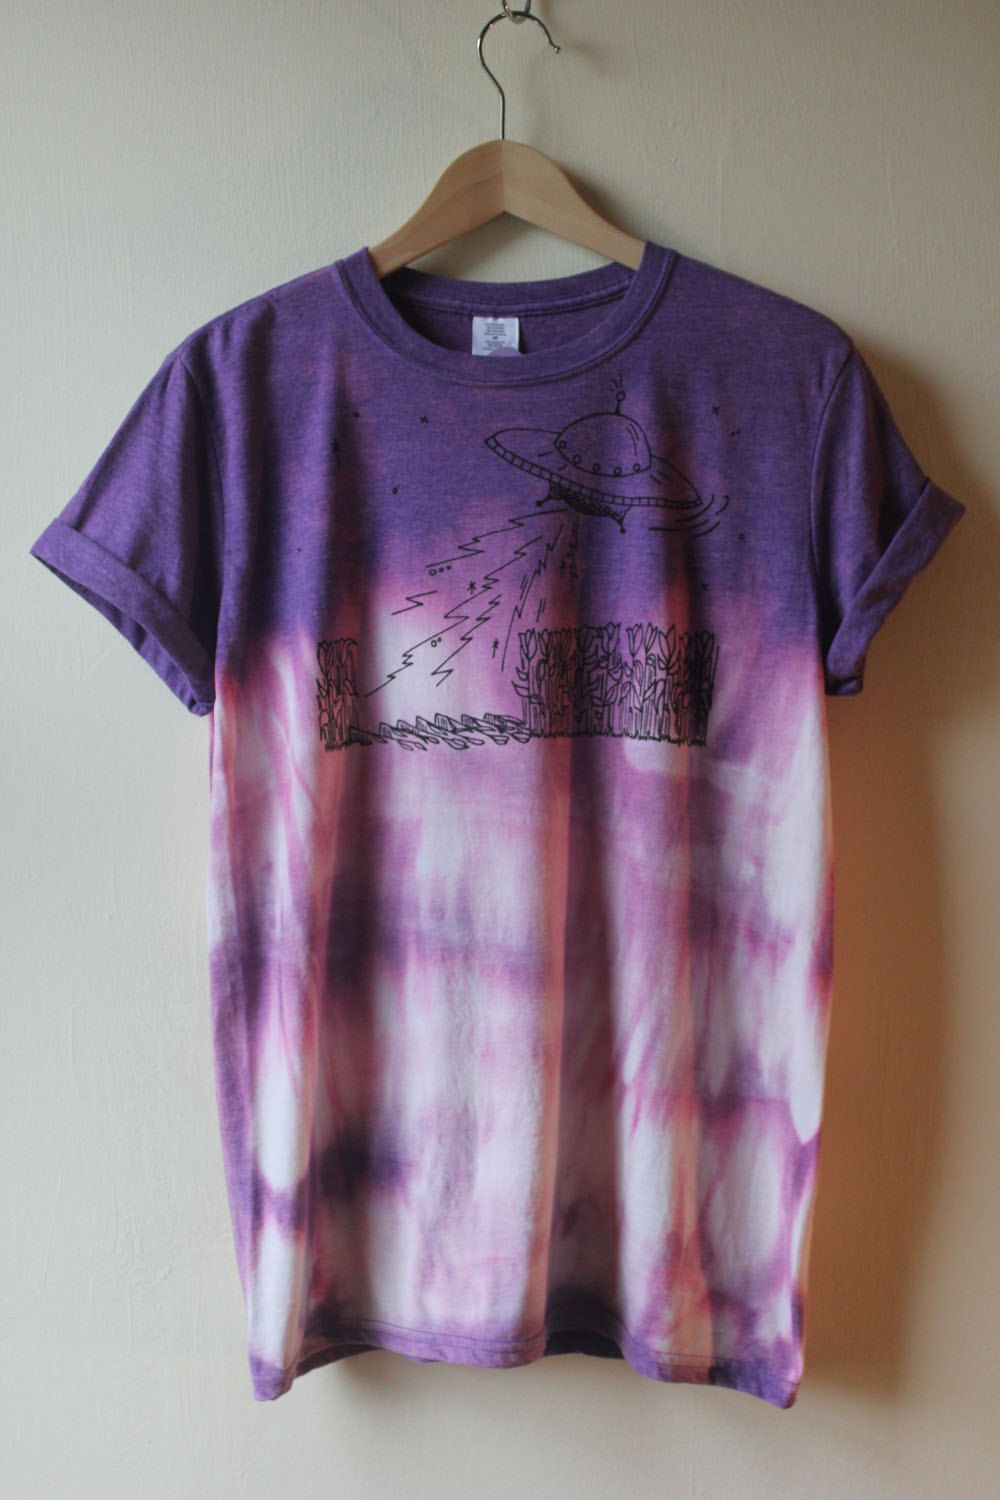 Tie dye screen printed ufo design t shirt by for Tie dye printed shirts